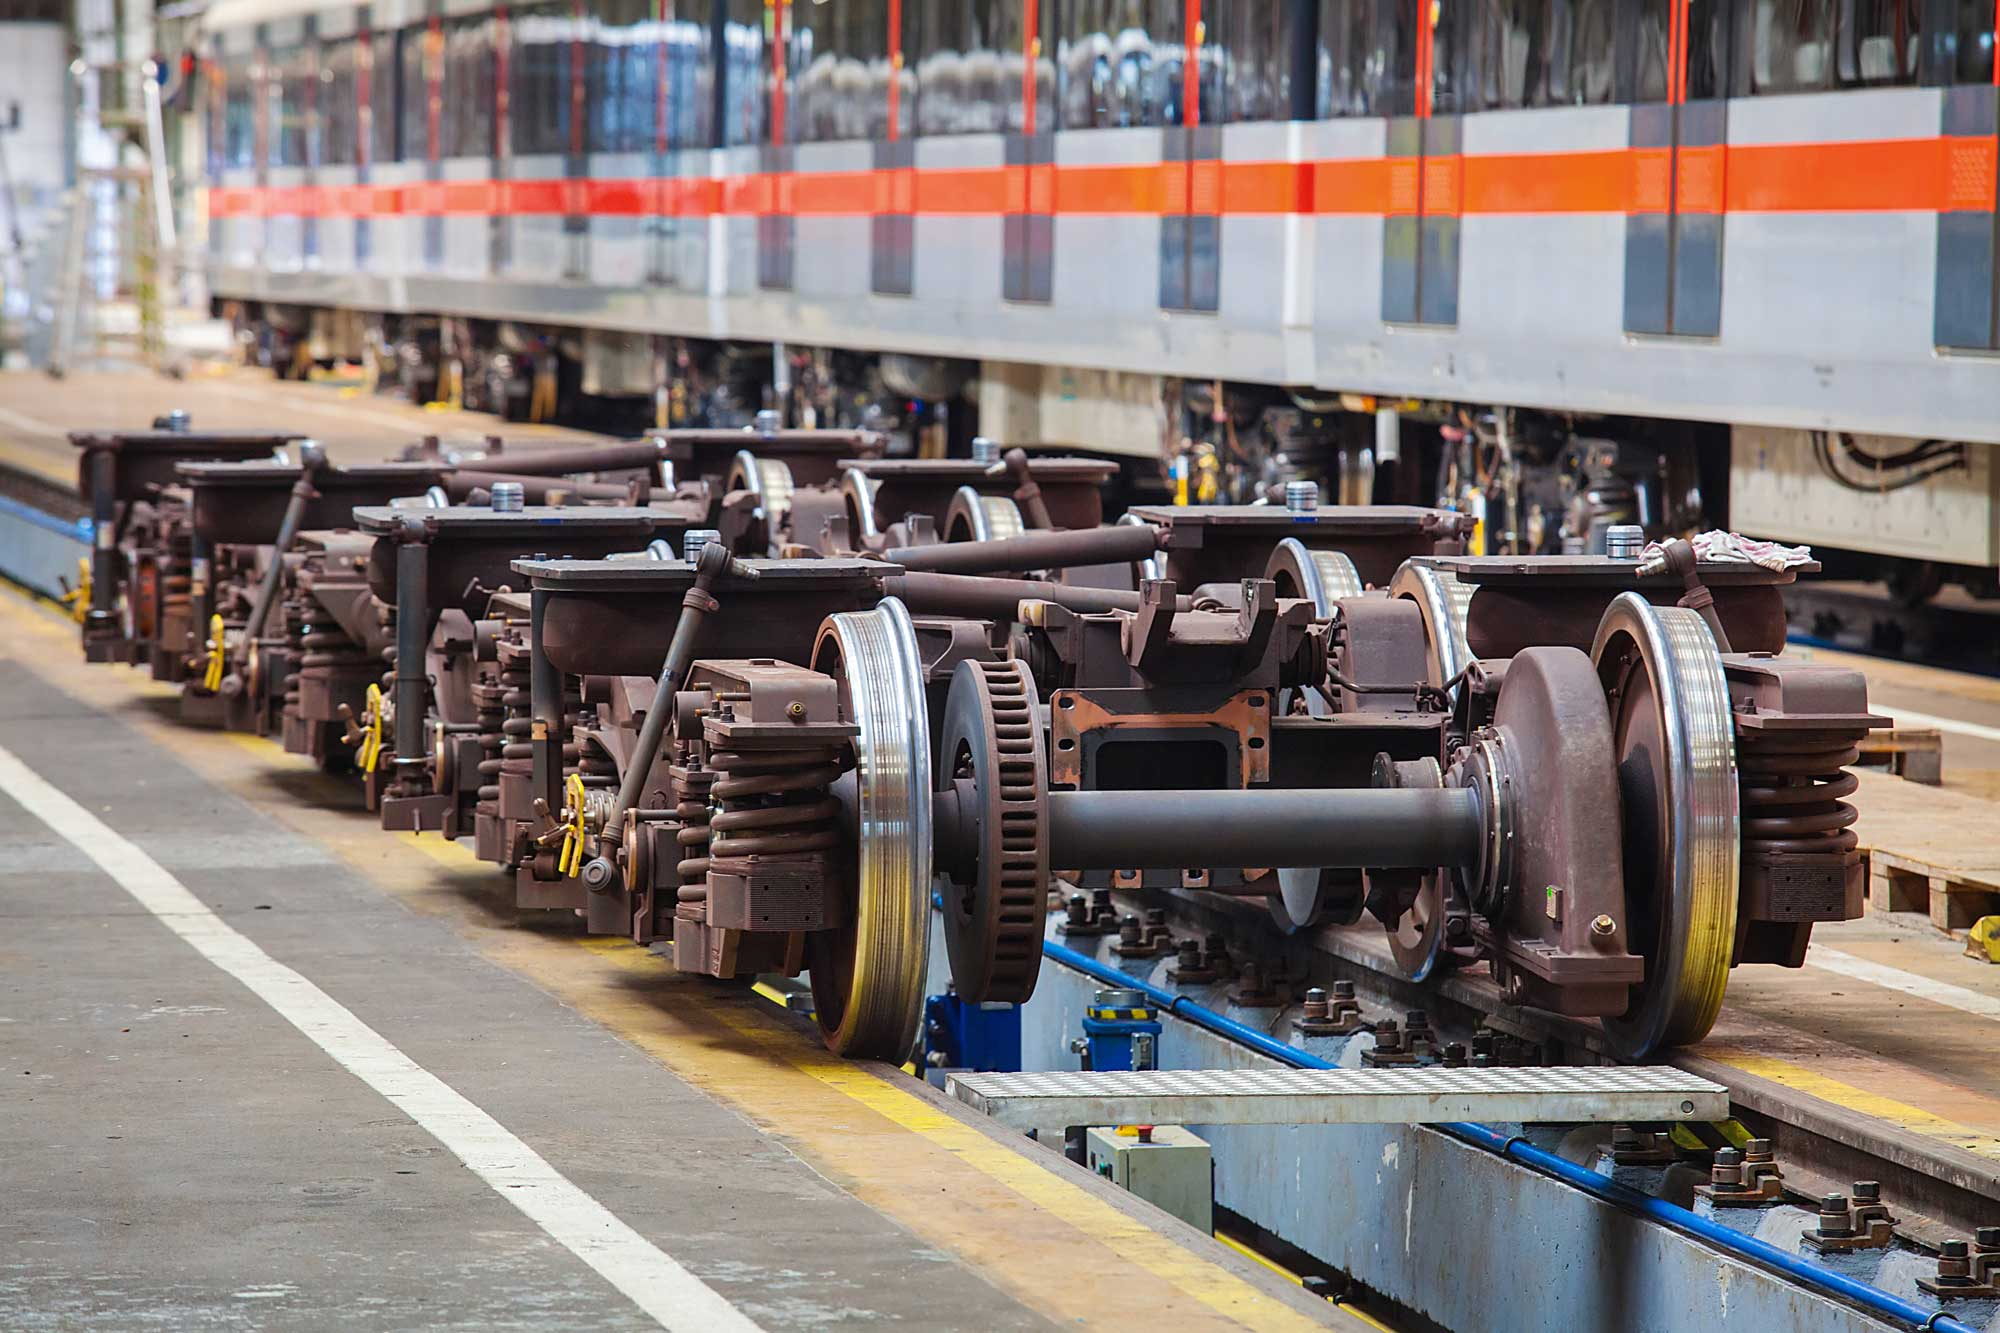 Heavy equipment manufacturing has unique operational performance challenges